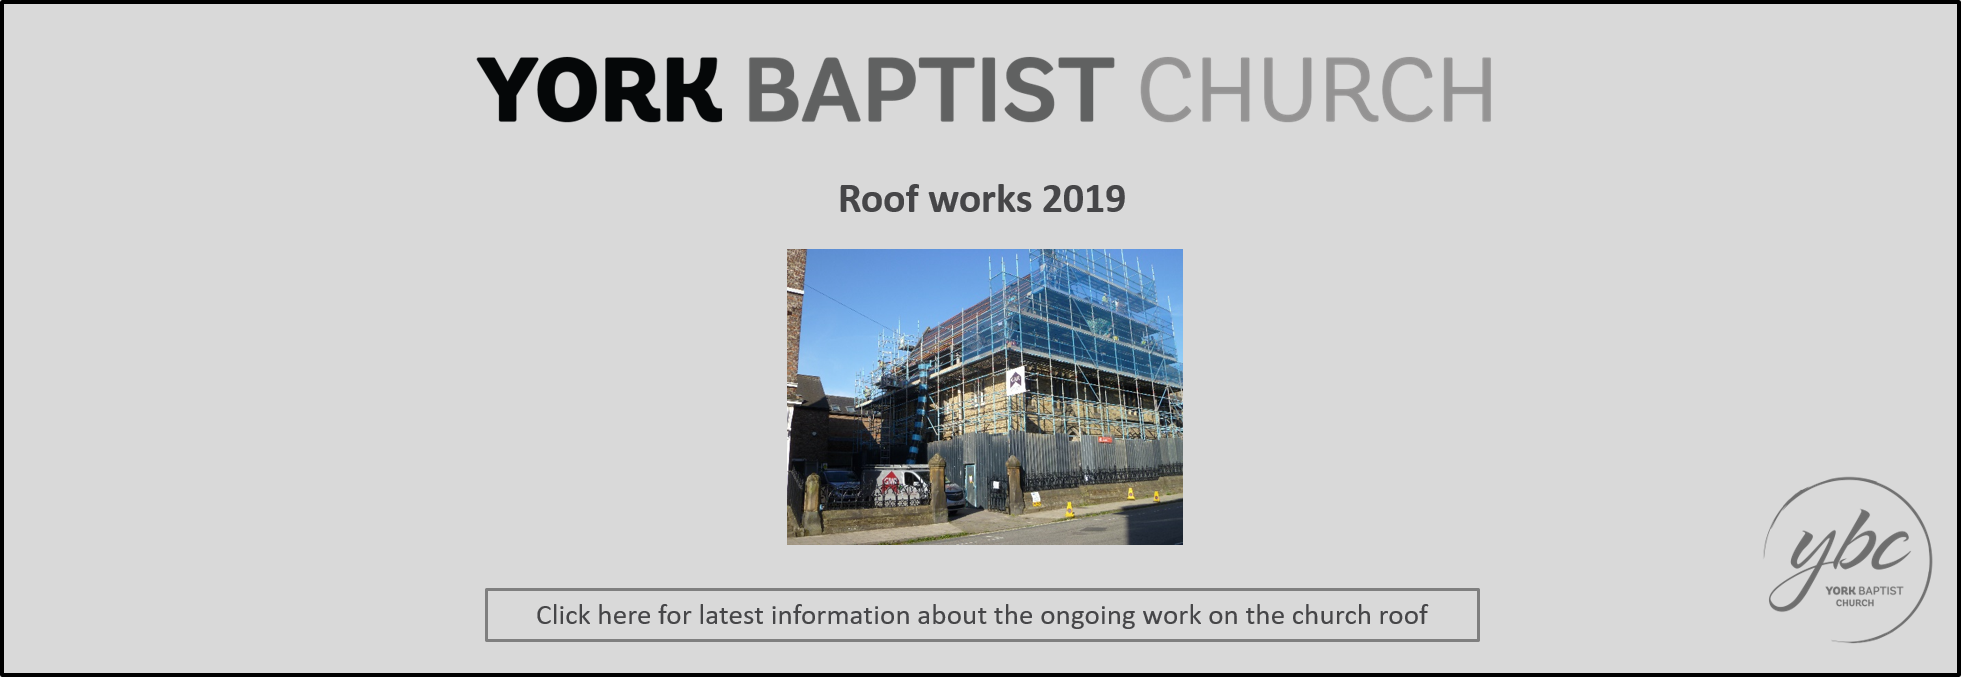 Roof works 2019 banner.png